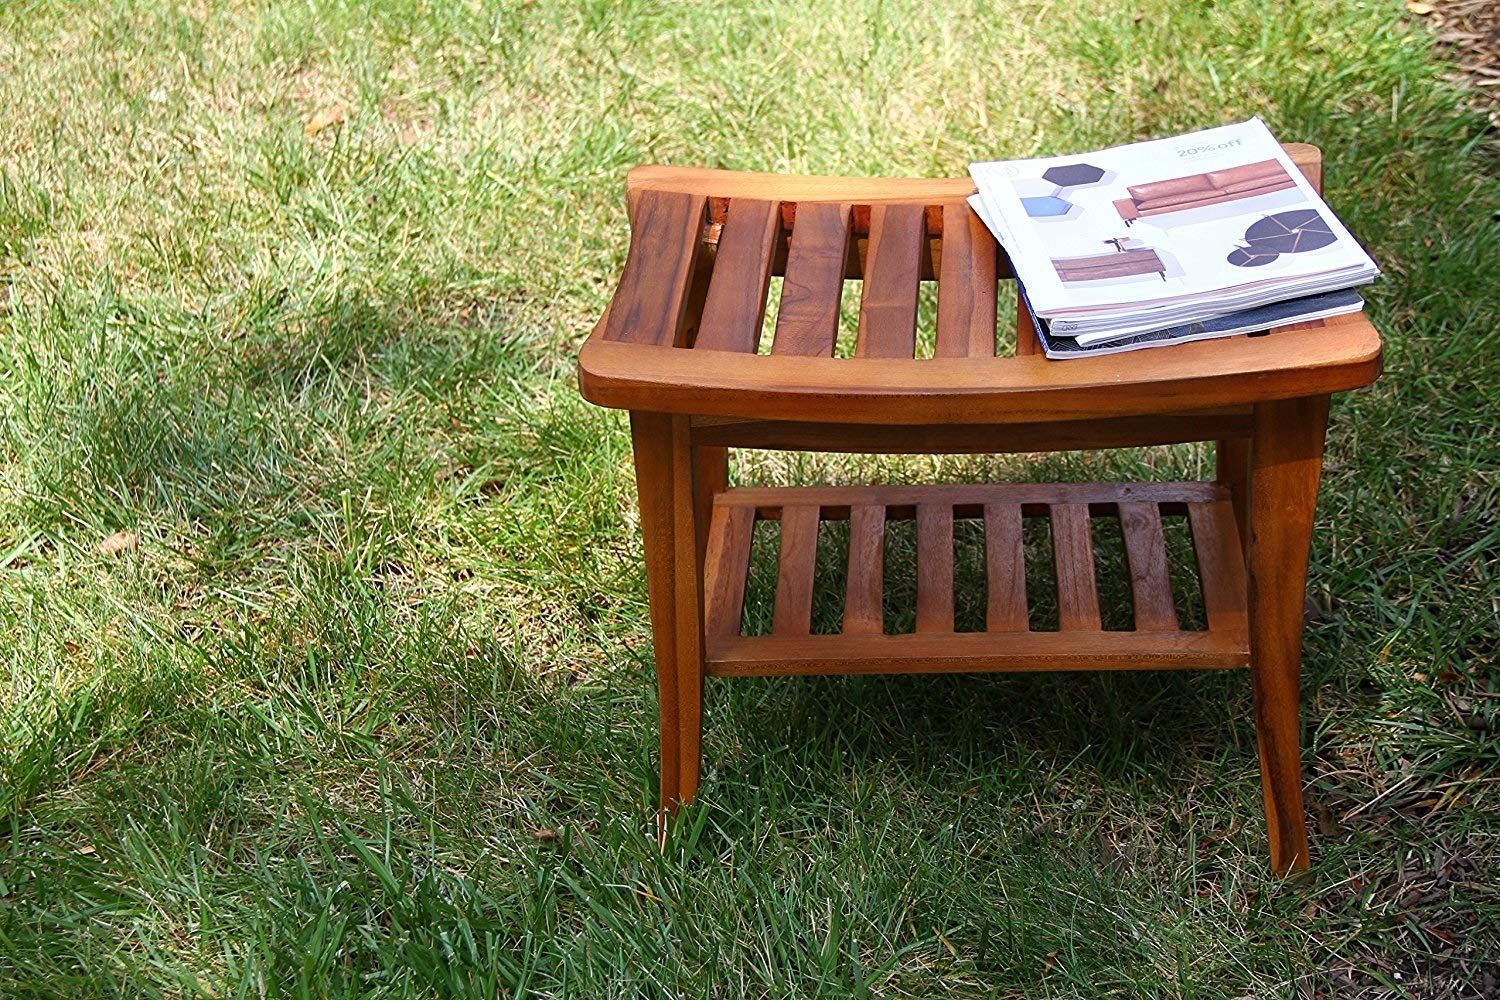 Teak shower benches discover the best benches made out of teak wood for your shower teak benches can go indoors or outdoors